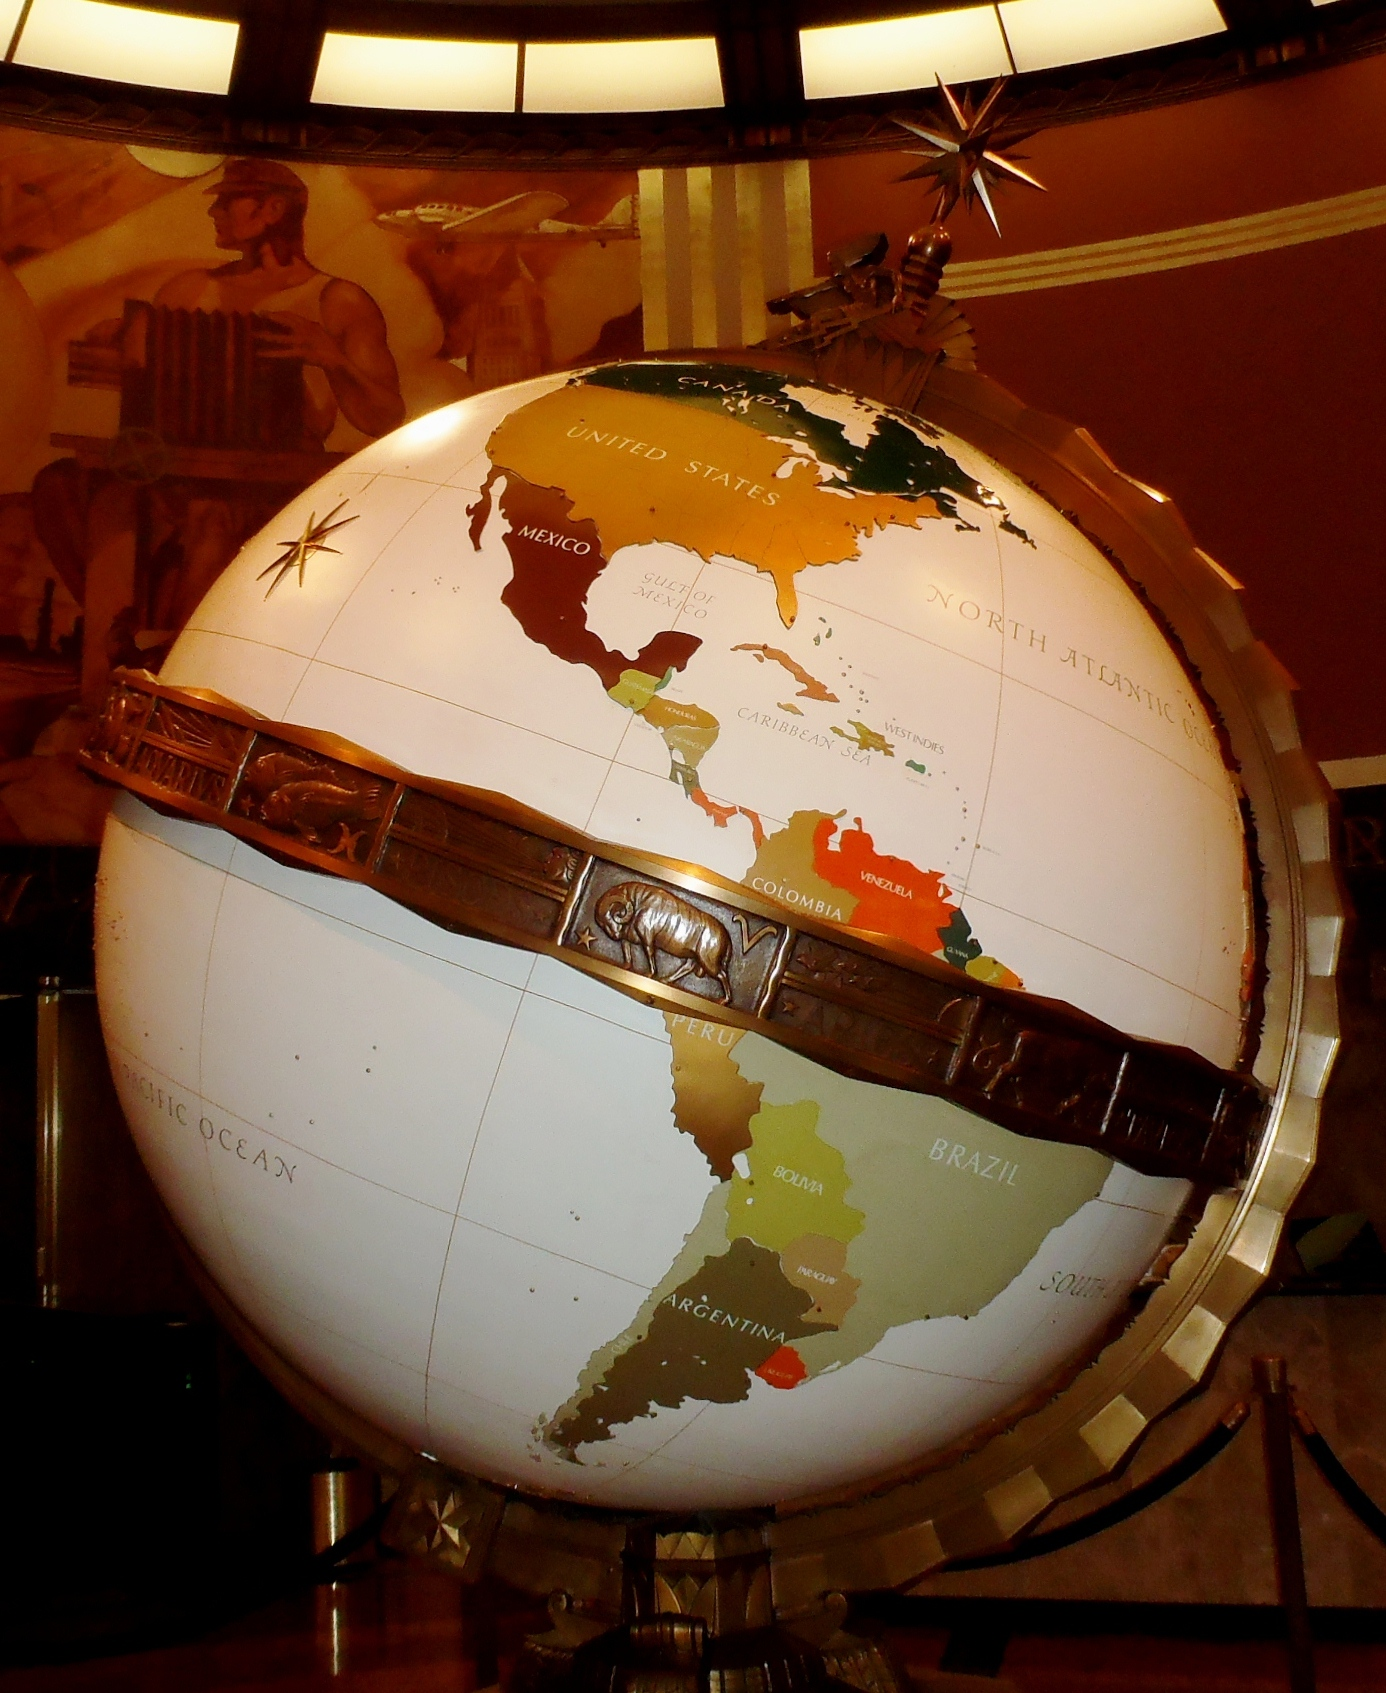 The Art Deco globe at The Times